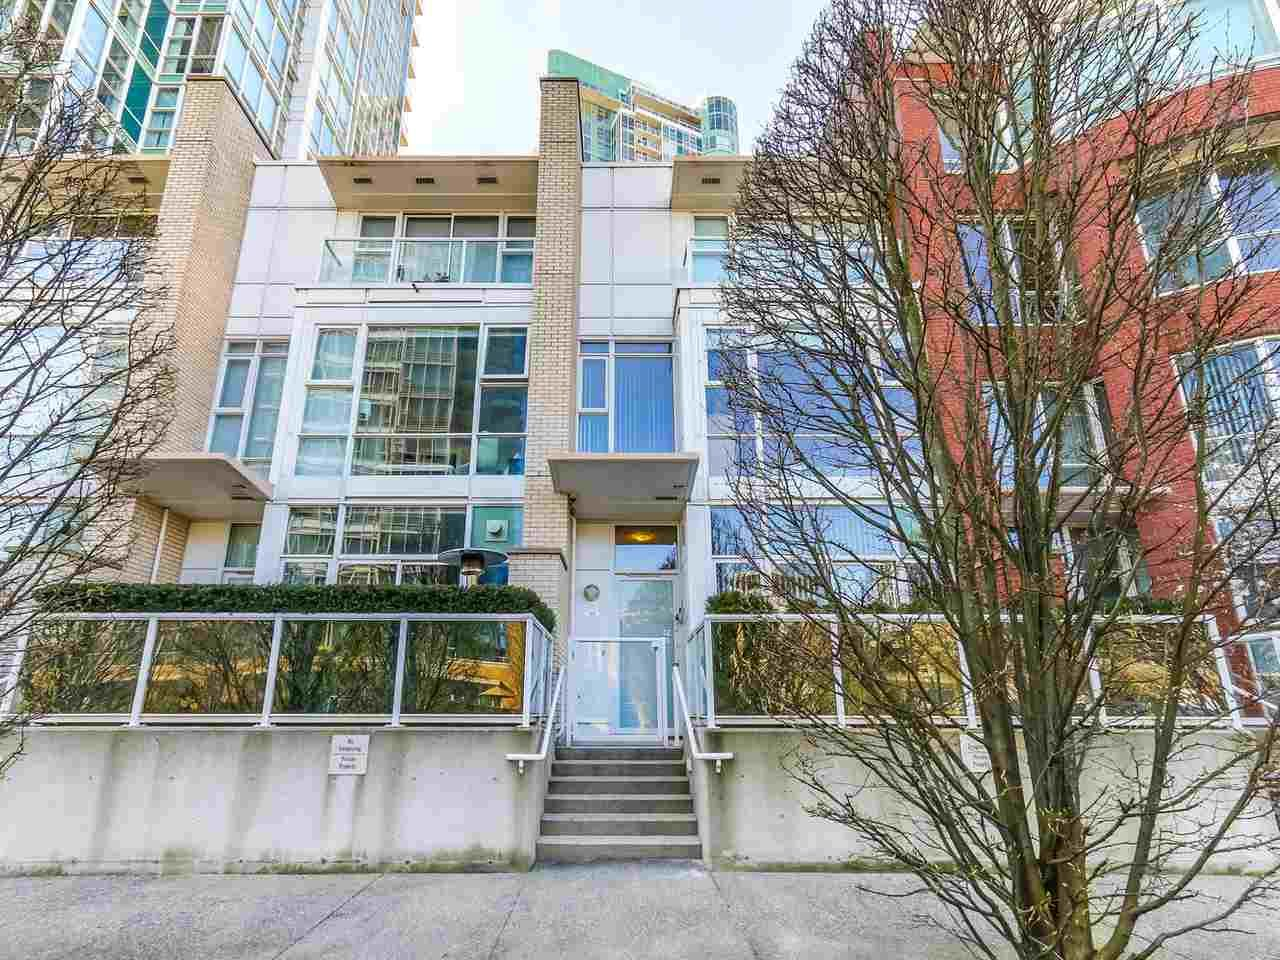 Main Photo: 188 BOATHOUSE MEWS in Vancouver: Yaletown Townhouse for sale (Vancouver West)  : MLS®# R2048357